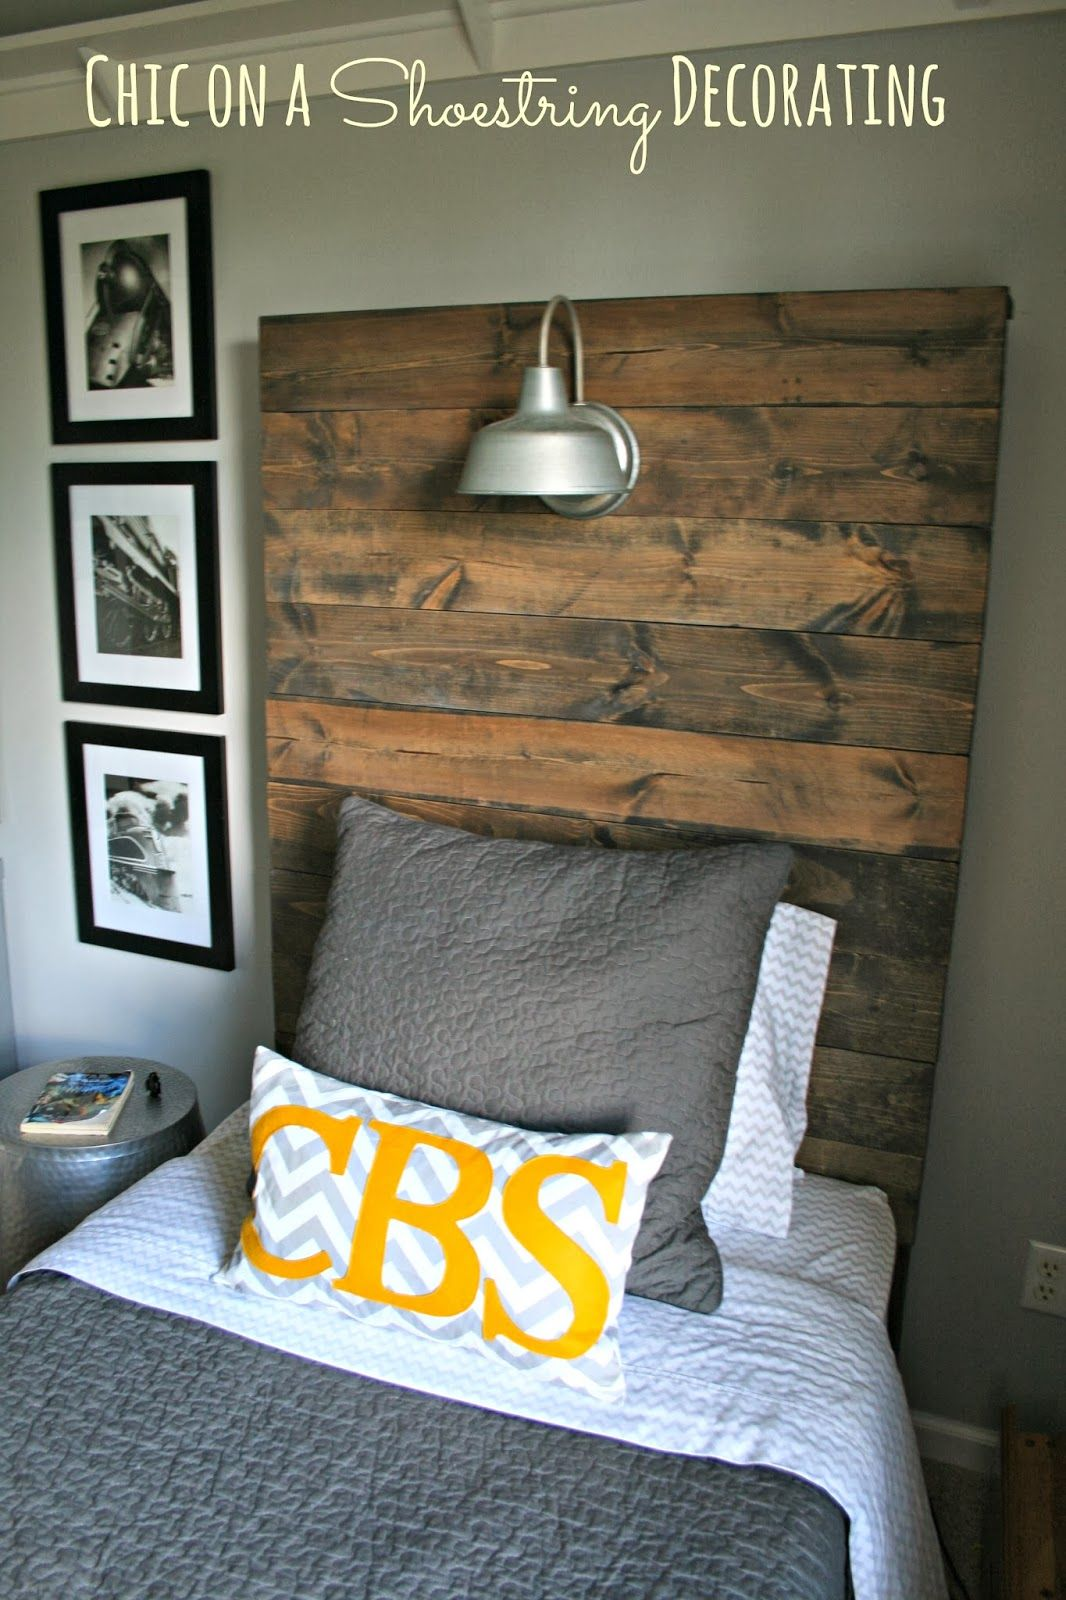 How To Build A Rustic Wooden Headboard With An Attached Light Fixture Tutorial By Chic On Shoestring Decorating